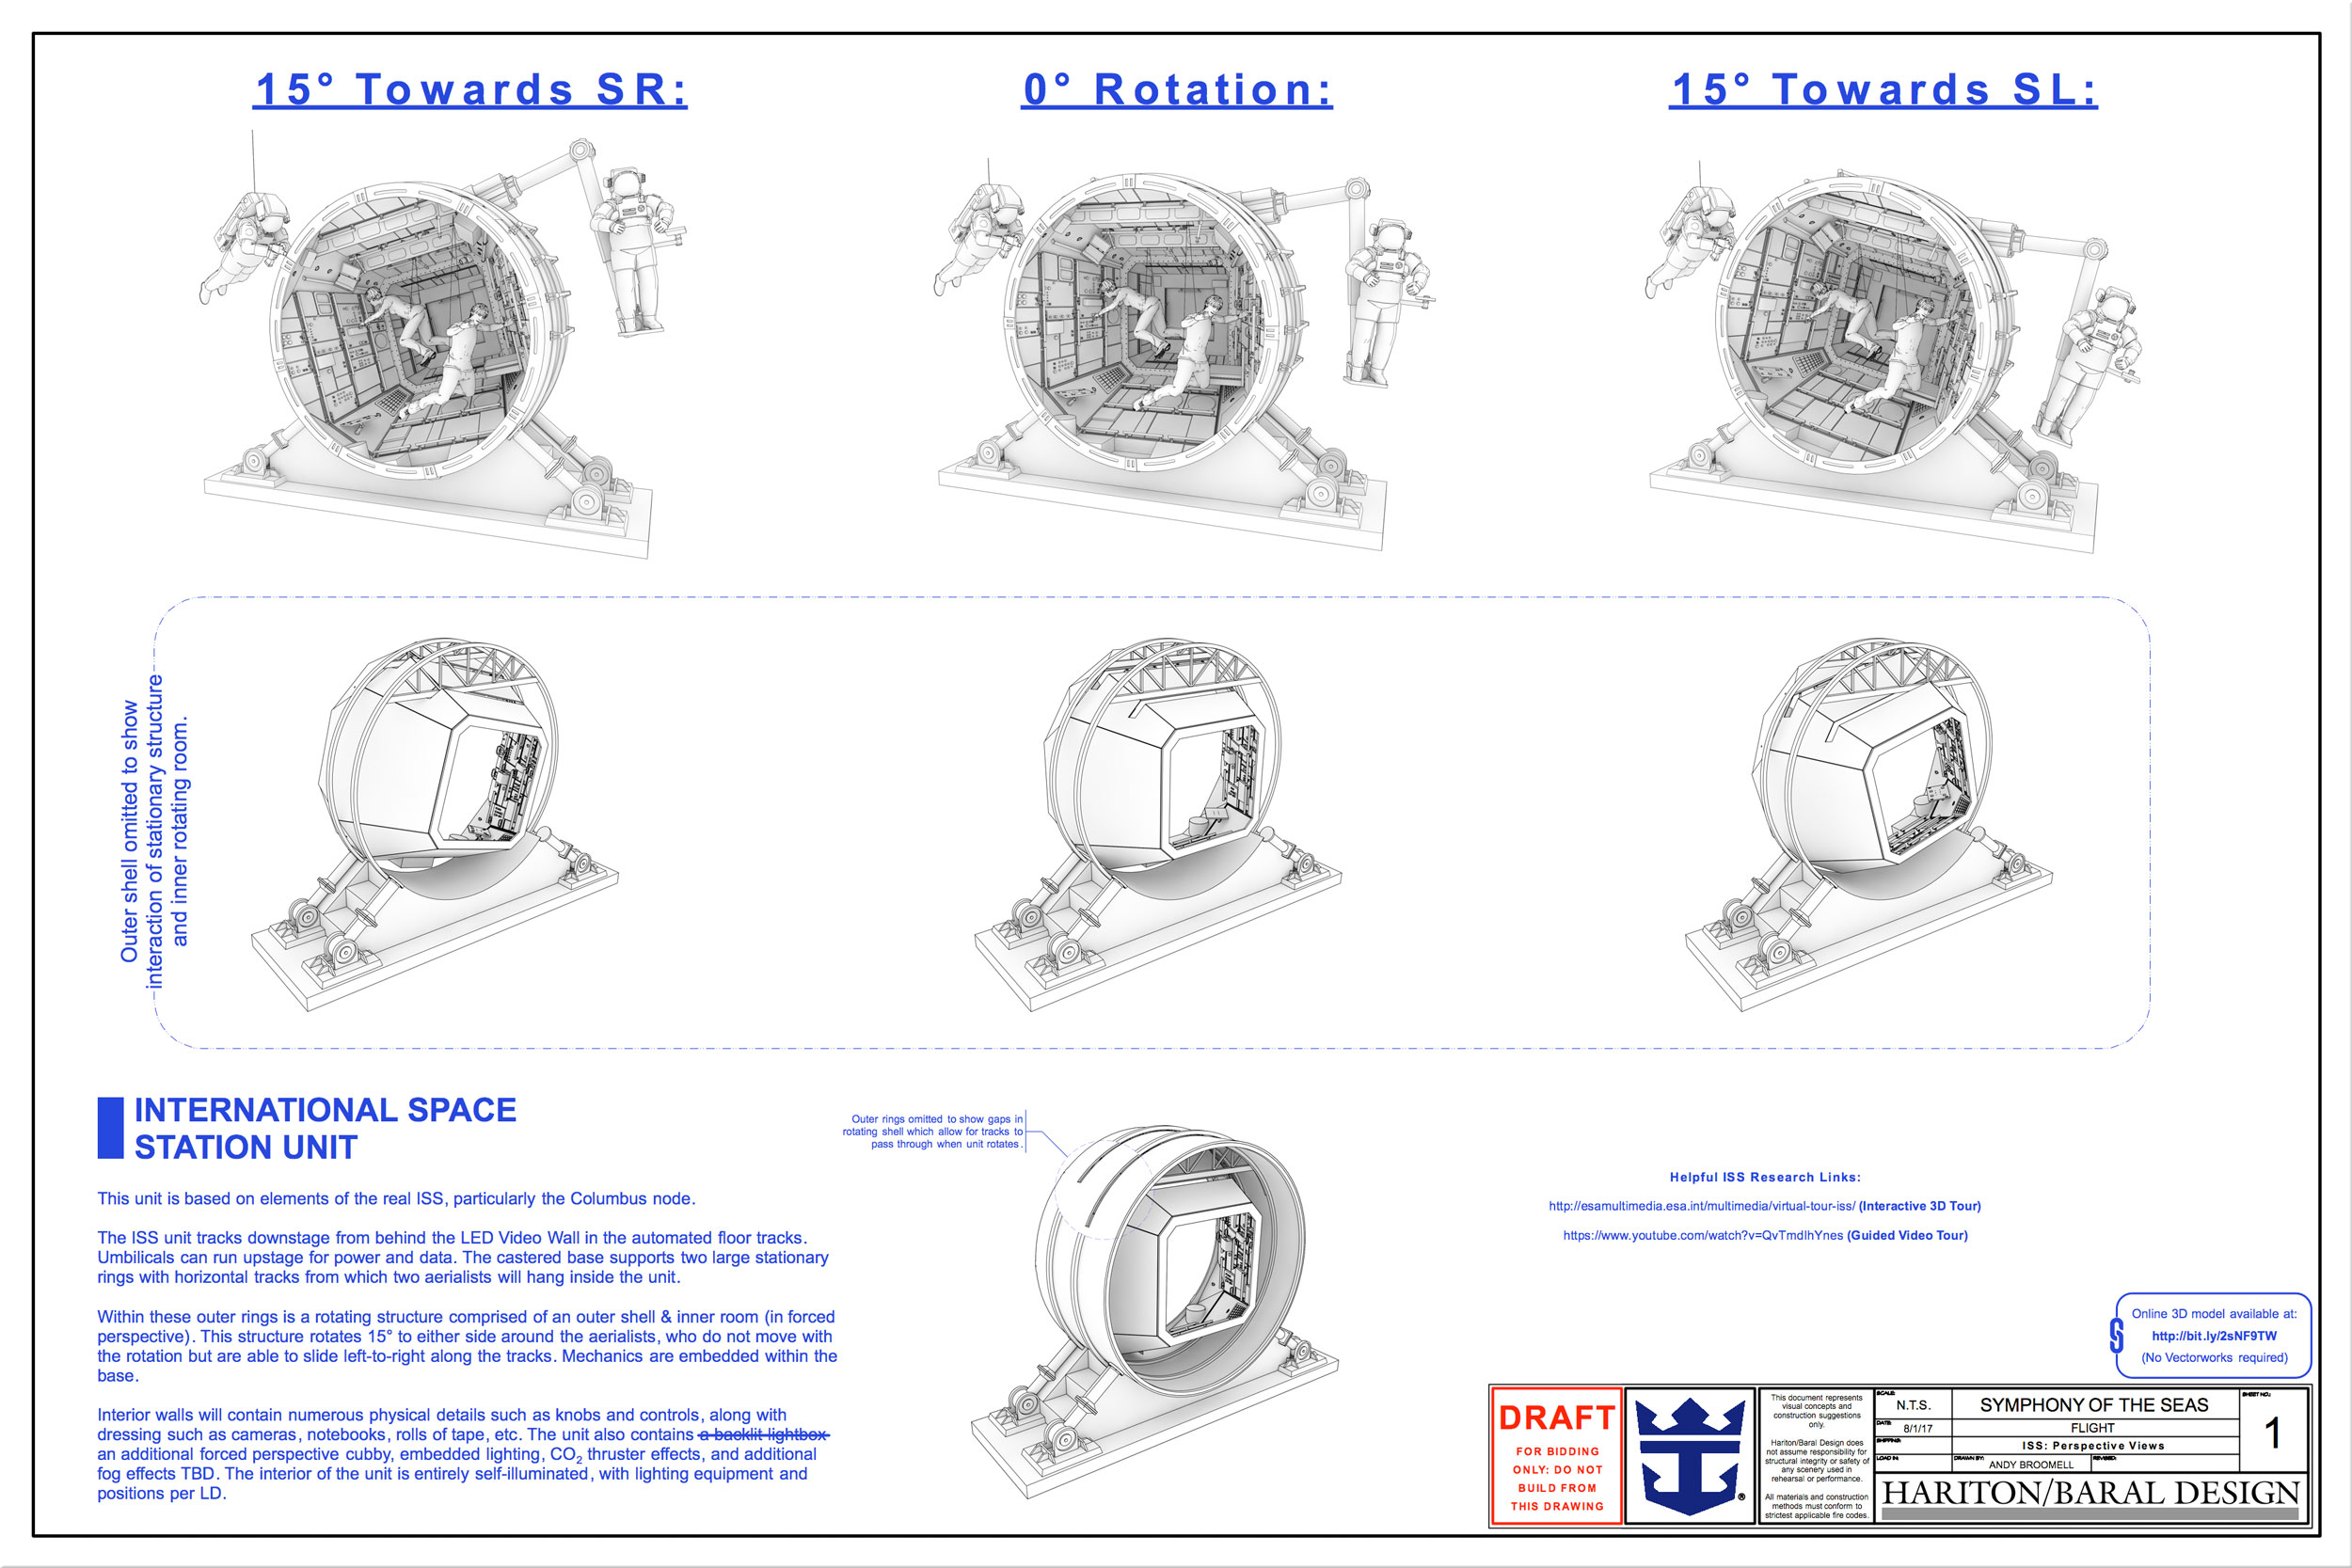 andy-broomell-vectorworks-drafting-iss-1.jpg